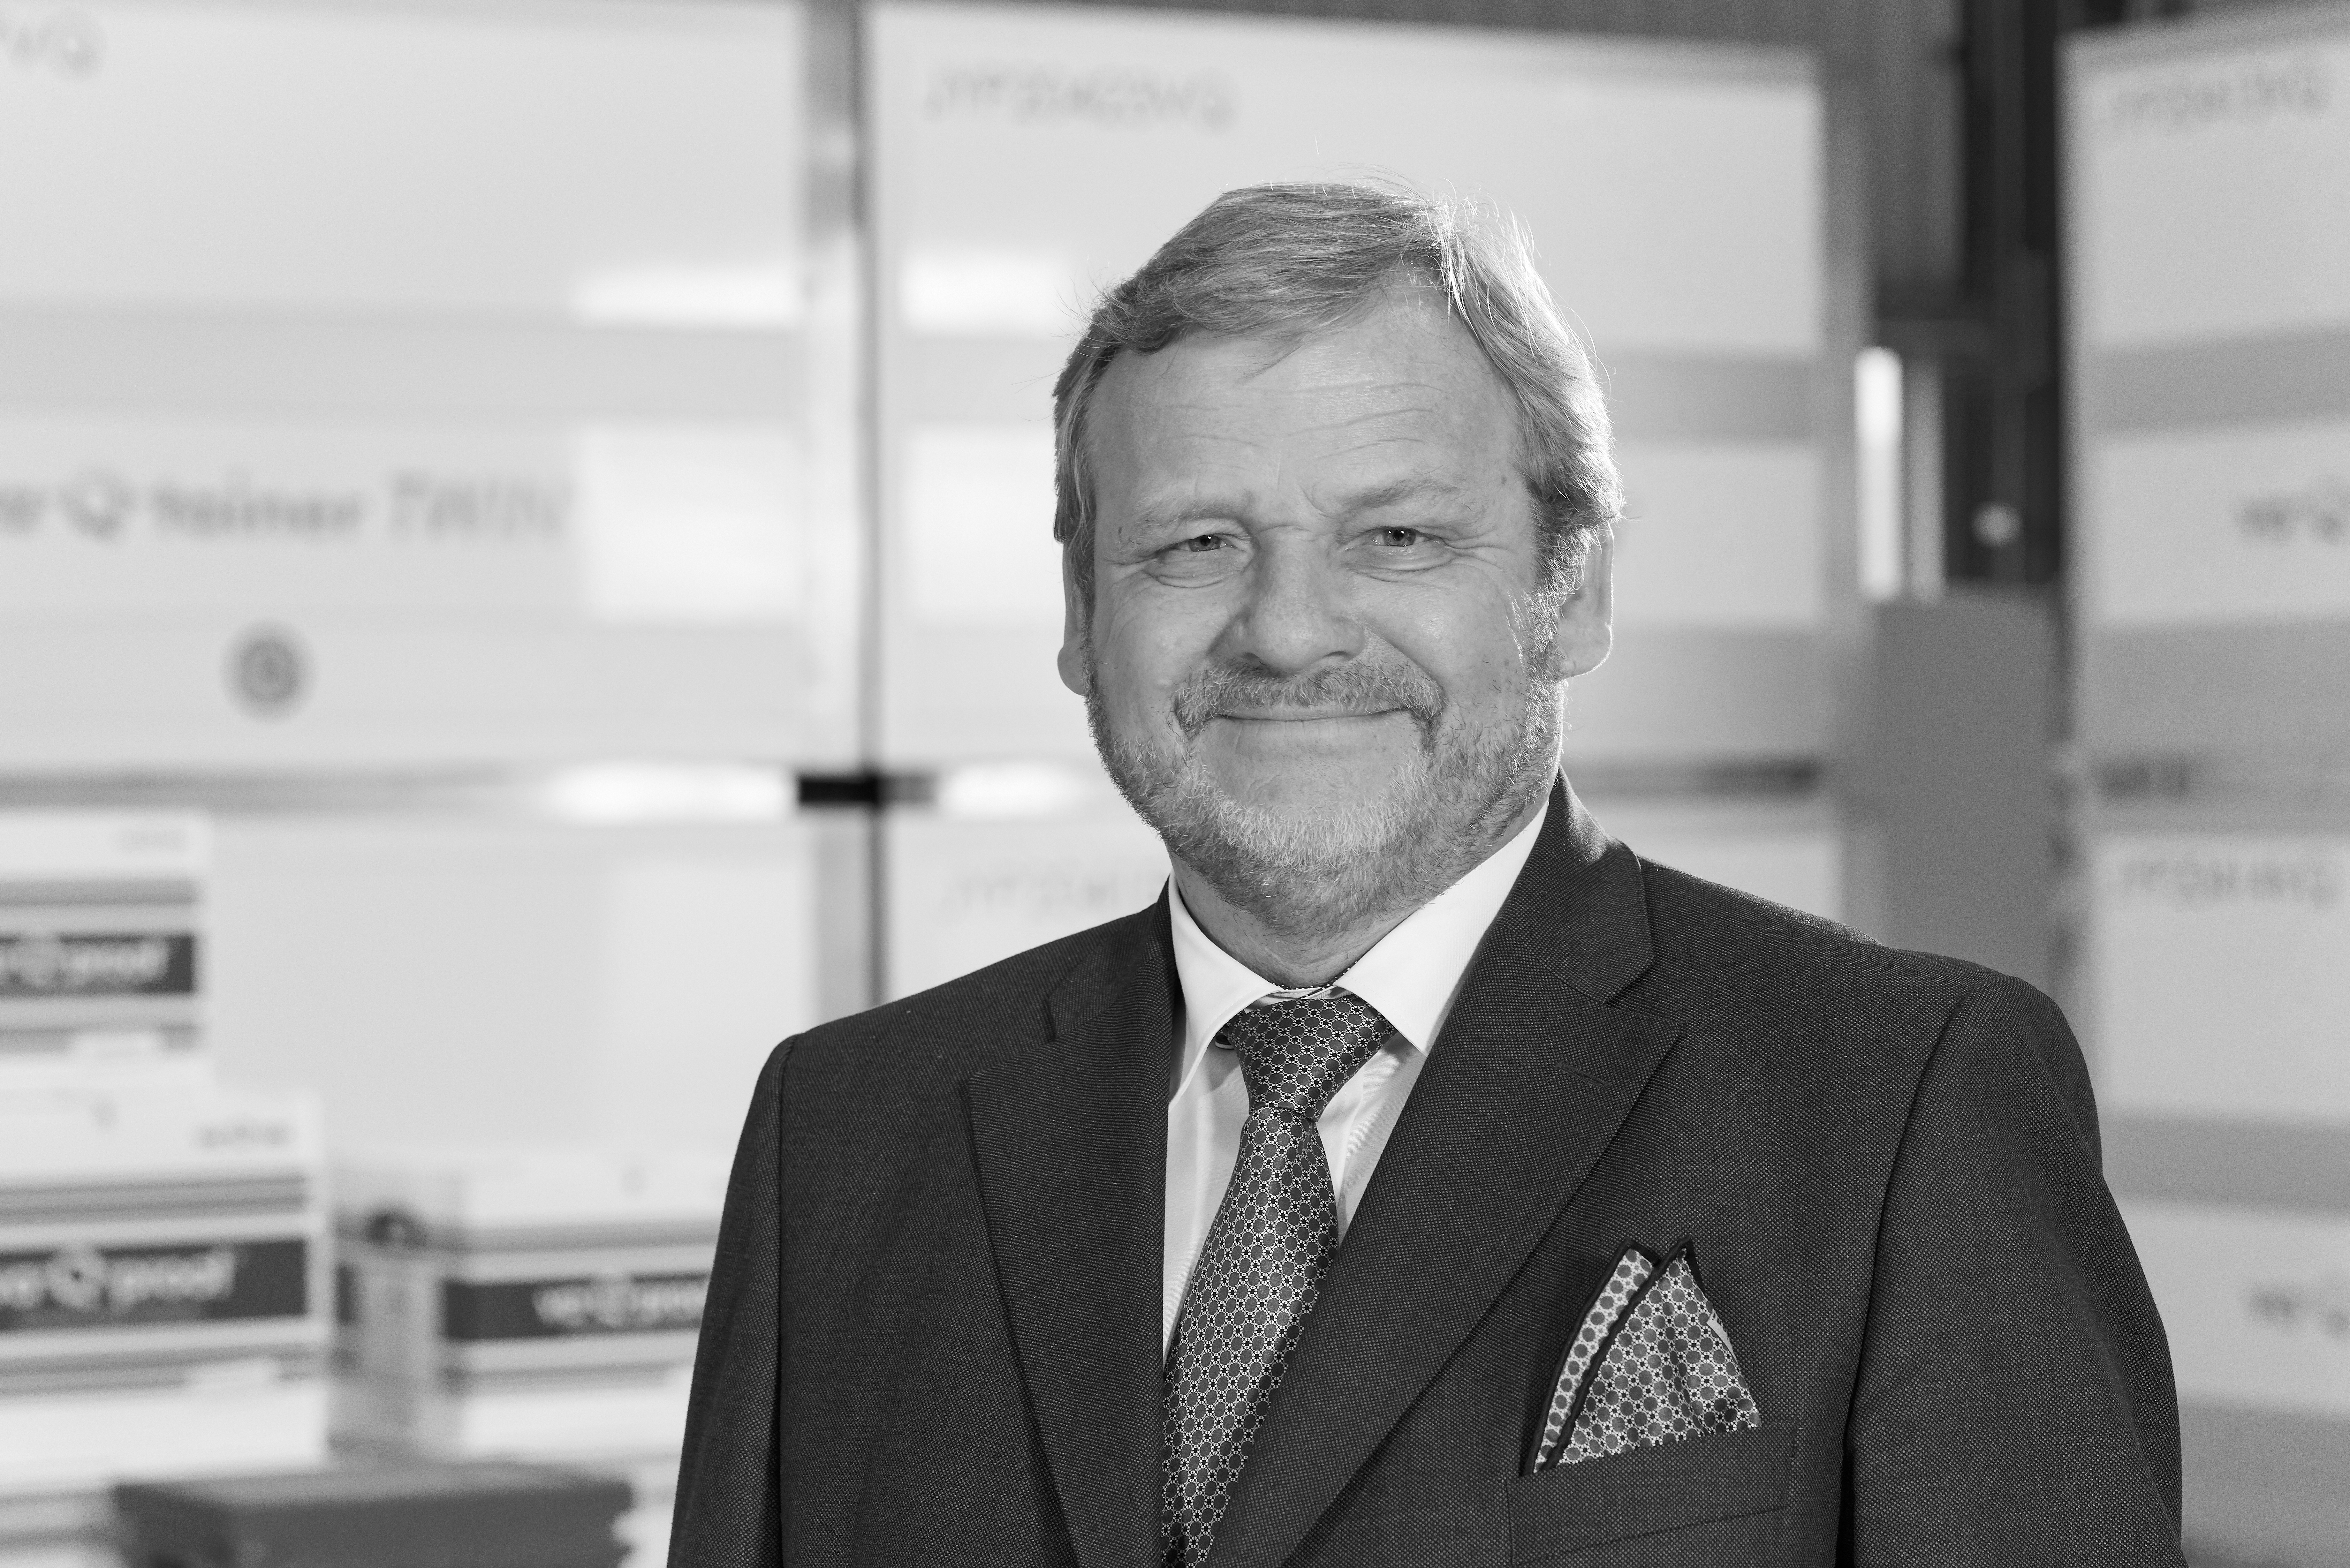 Deputy Chairman of the Supervisory Board Uwe H. Lamann has died